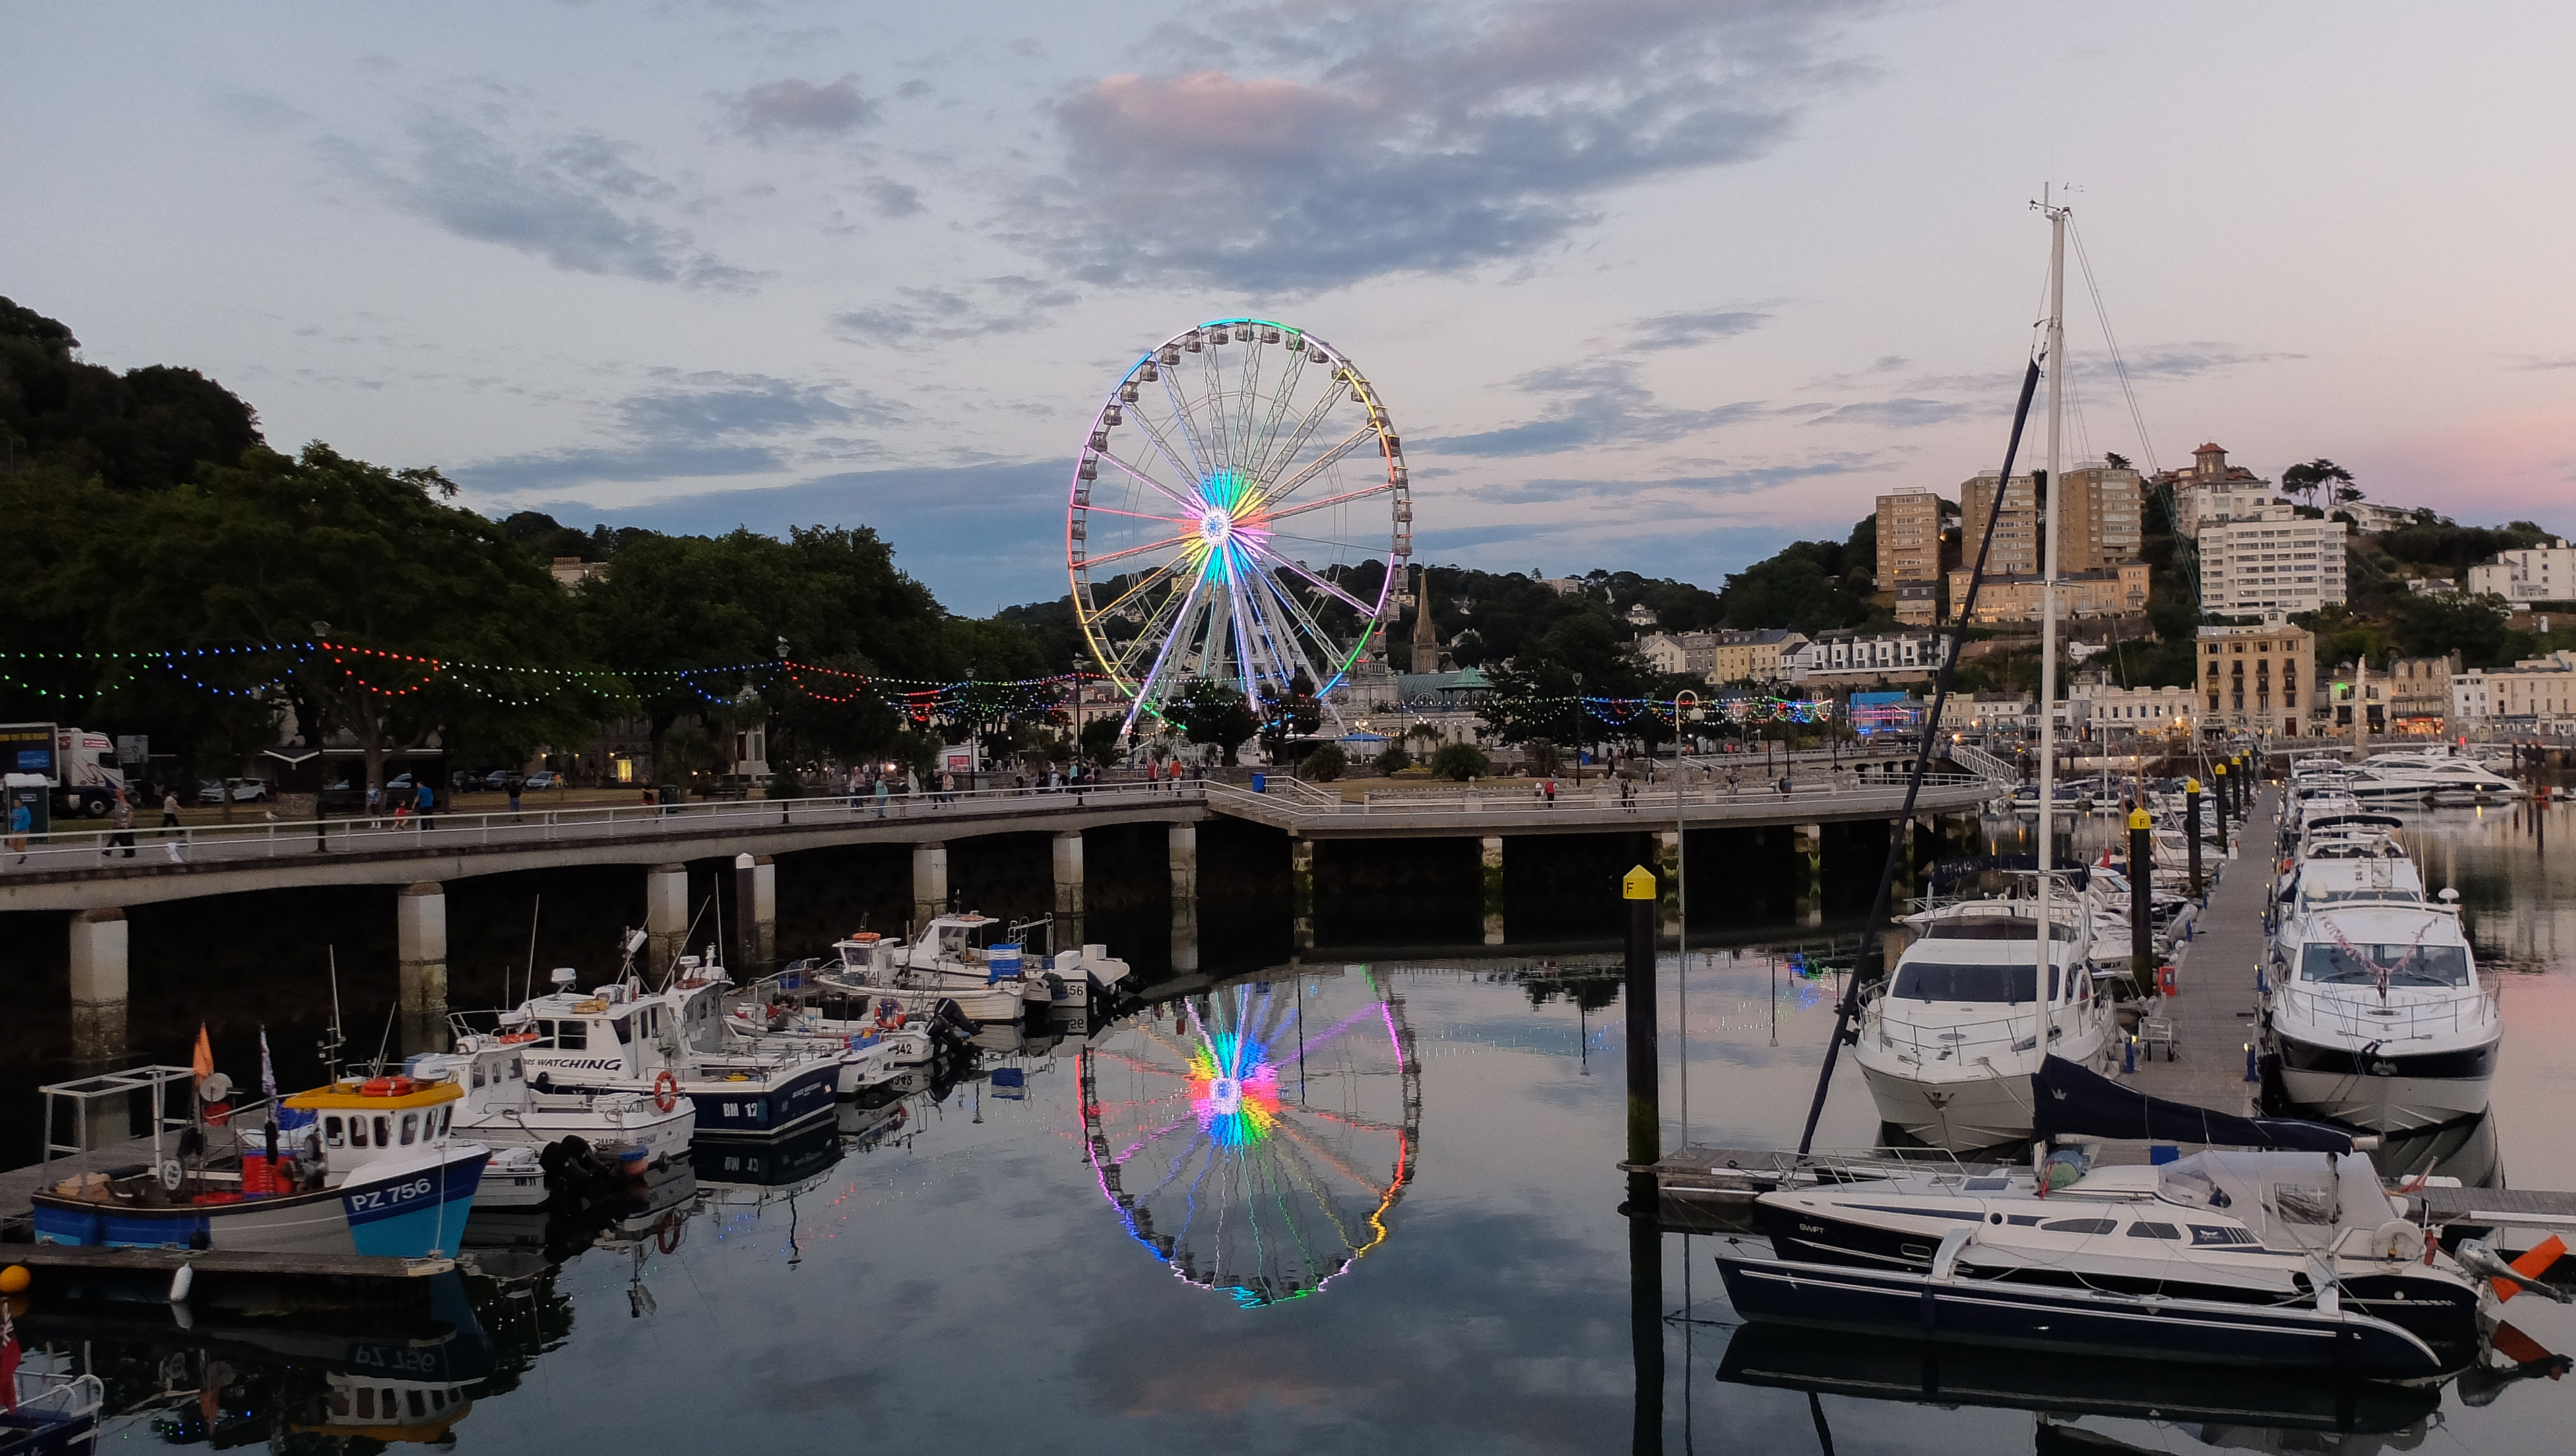 Torquay ferris wheel in the evening